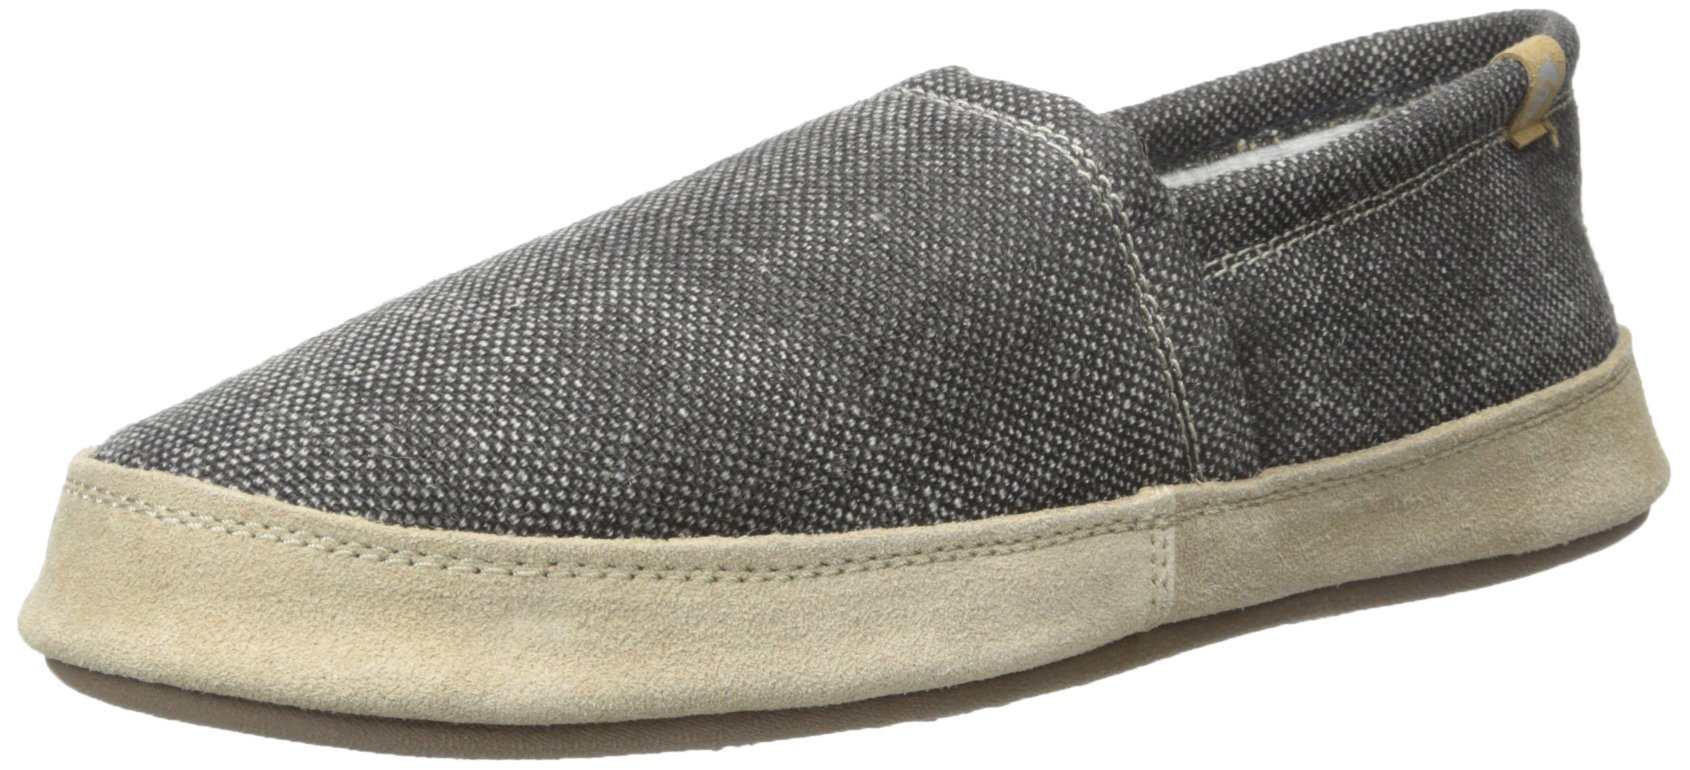 Acorn Men's Summerweight Moc Slipper,Stone Wash/Black Canvas,Small/7.5-8.5 M US